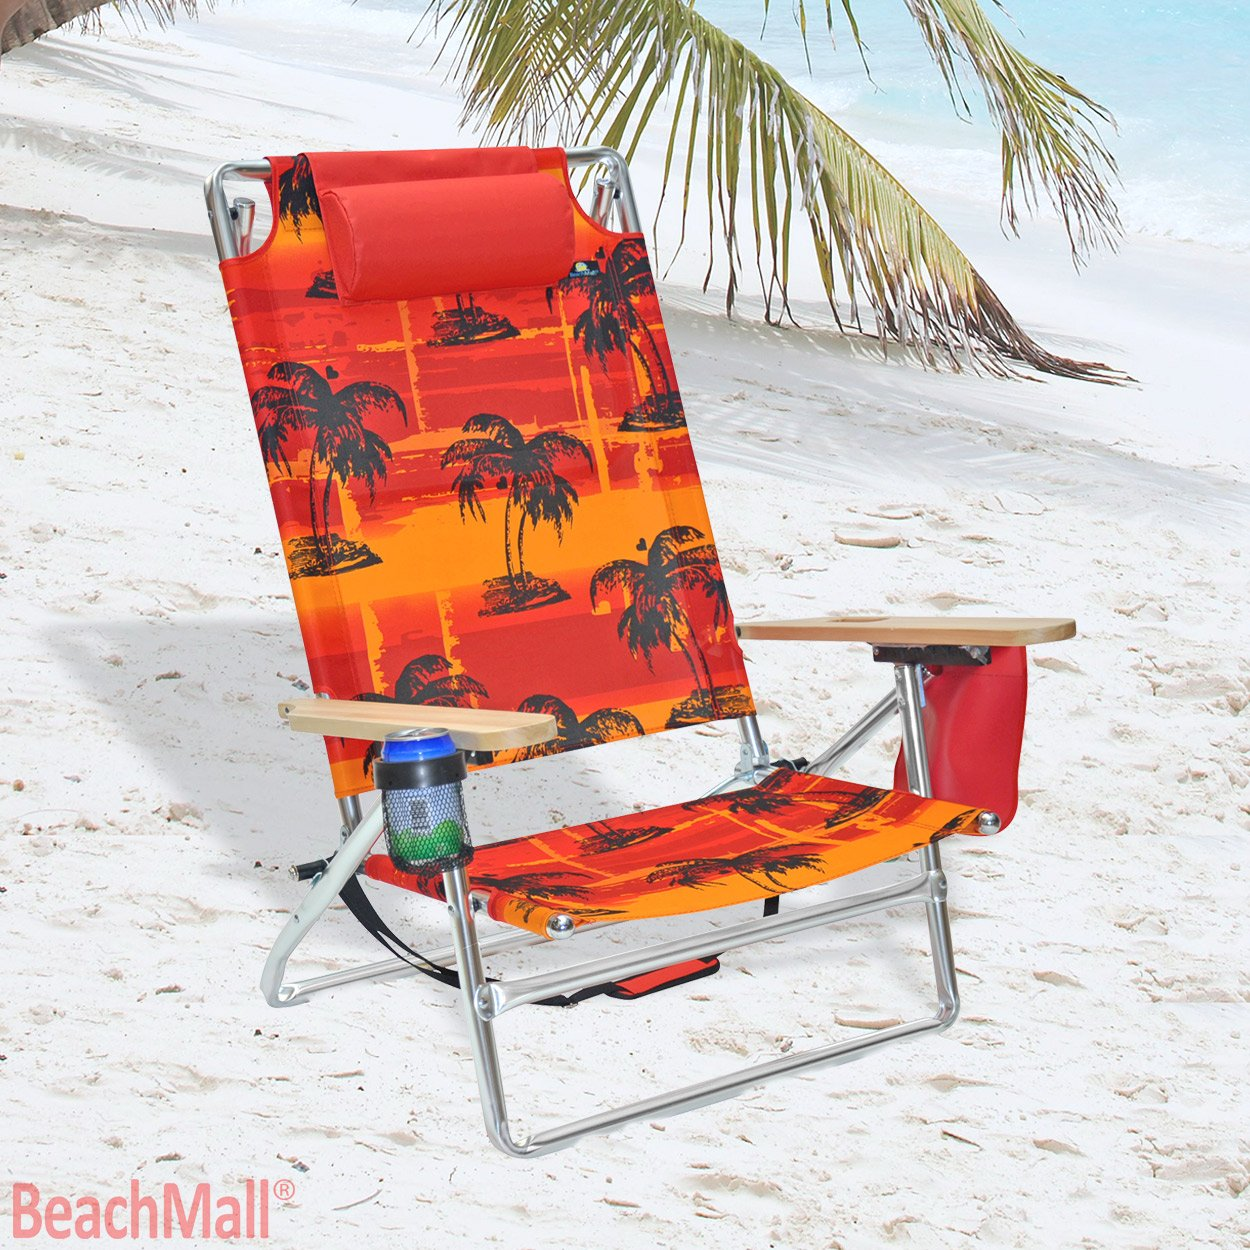 Beach Chairs For Heavy Person Plus Size Beach Chairs 300 Lbs Plus Size People For Big